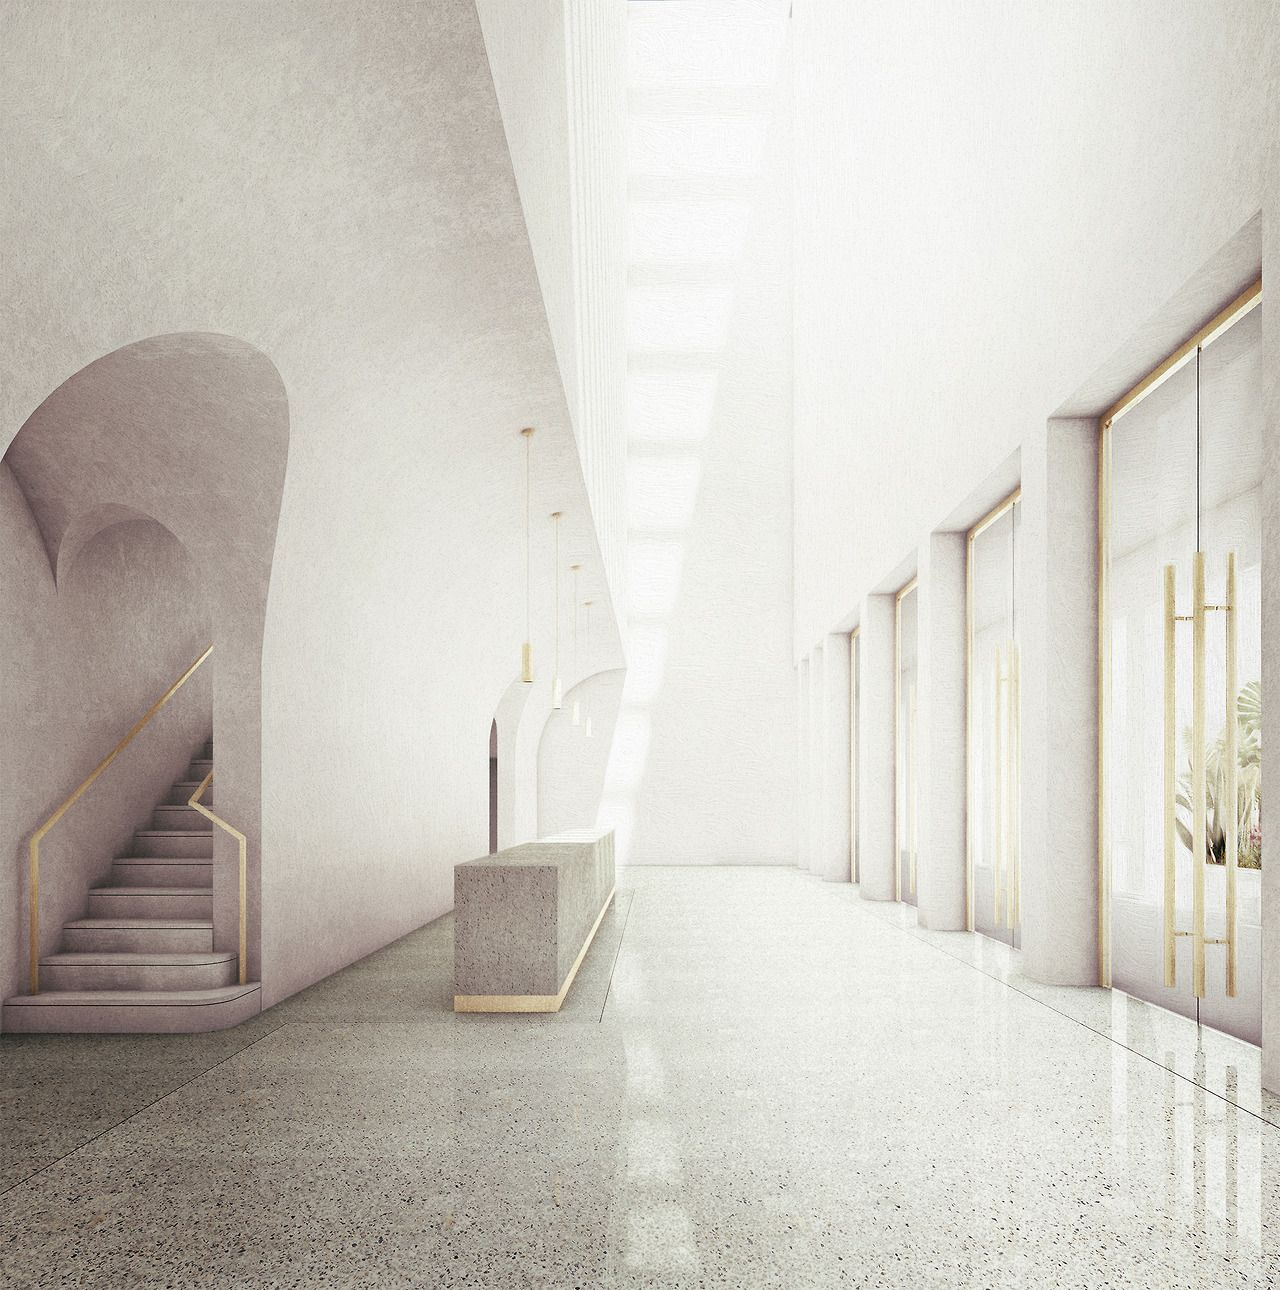 Conservatorio di Musica i Napoli - a new music school for Naples #arquitectonico